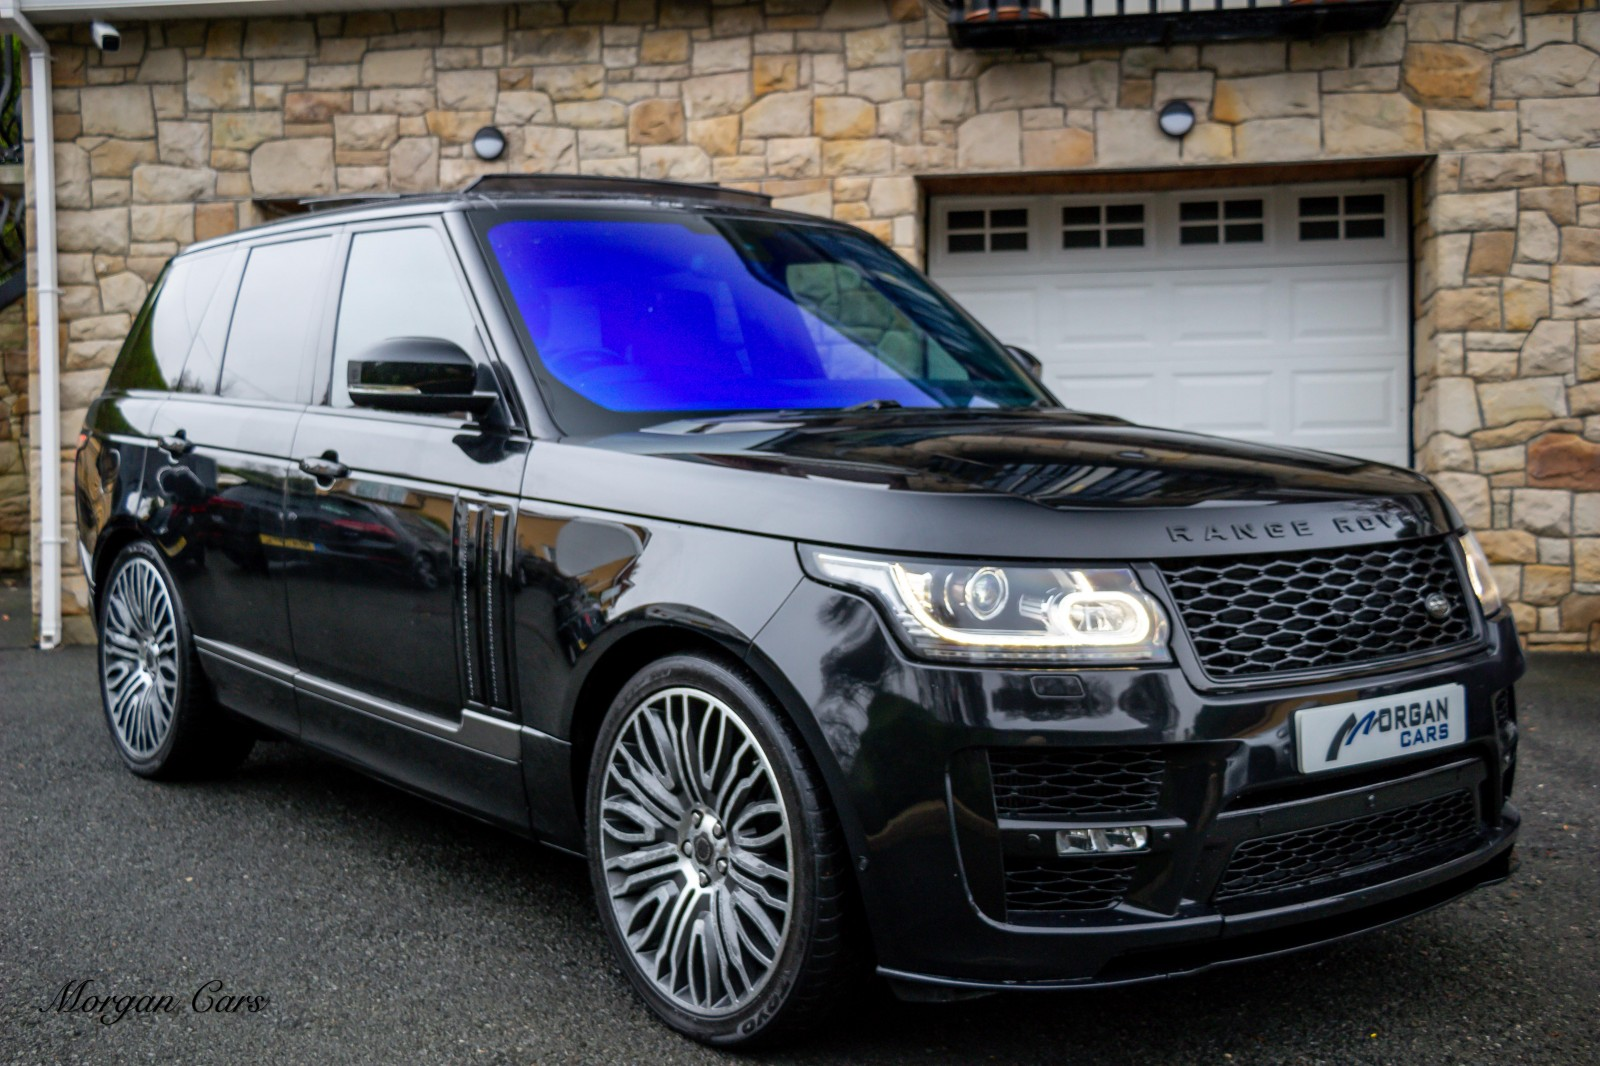 2015 Land Rover Range Rover 4.4 SDV8 VOGUE SE Diesel Automatic – Morgan Cars 9 Mound Road, Warrenpoint, Newry BT34 3LW, UK full